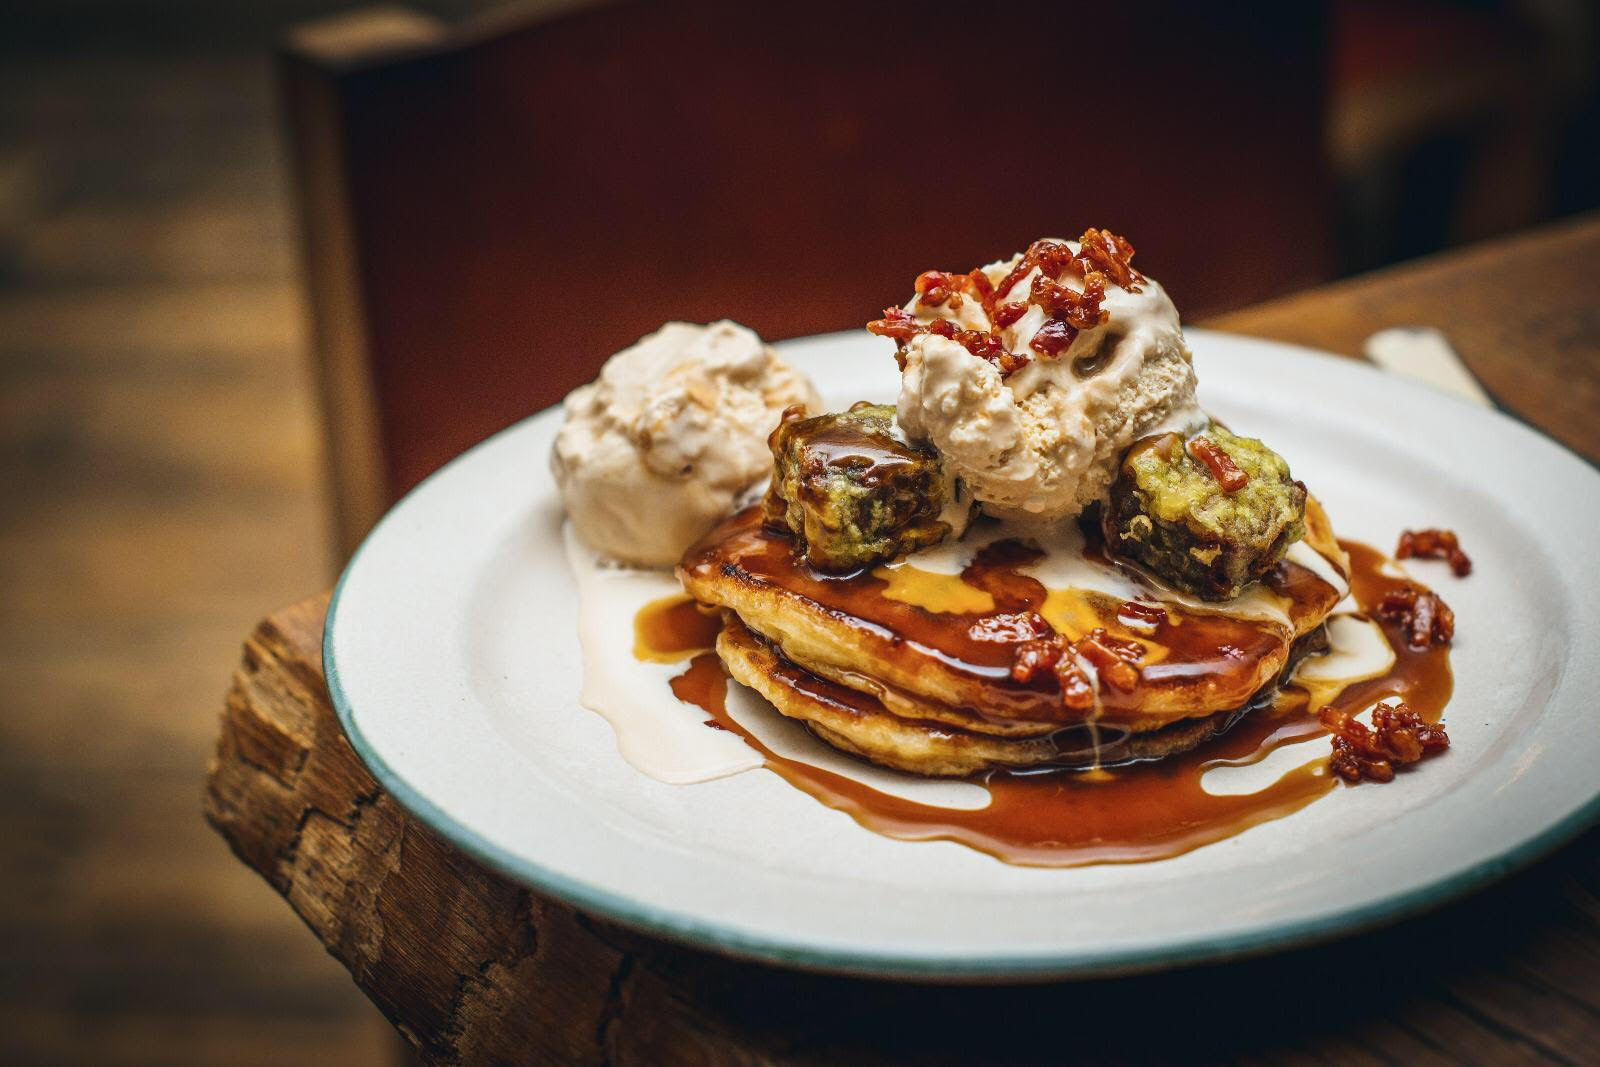 London pancake day guide, London pancake day guide 2018, best London pancake day guide, where to eat pancakes in London